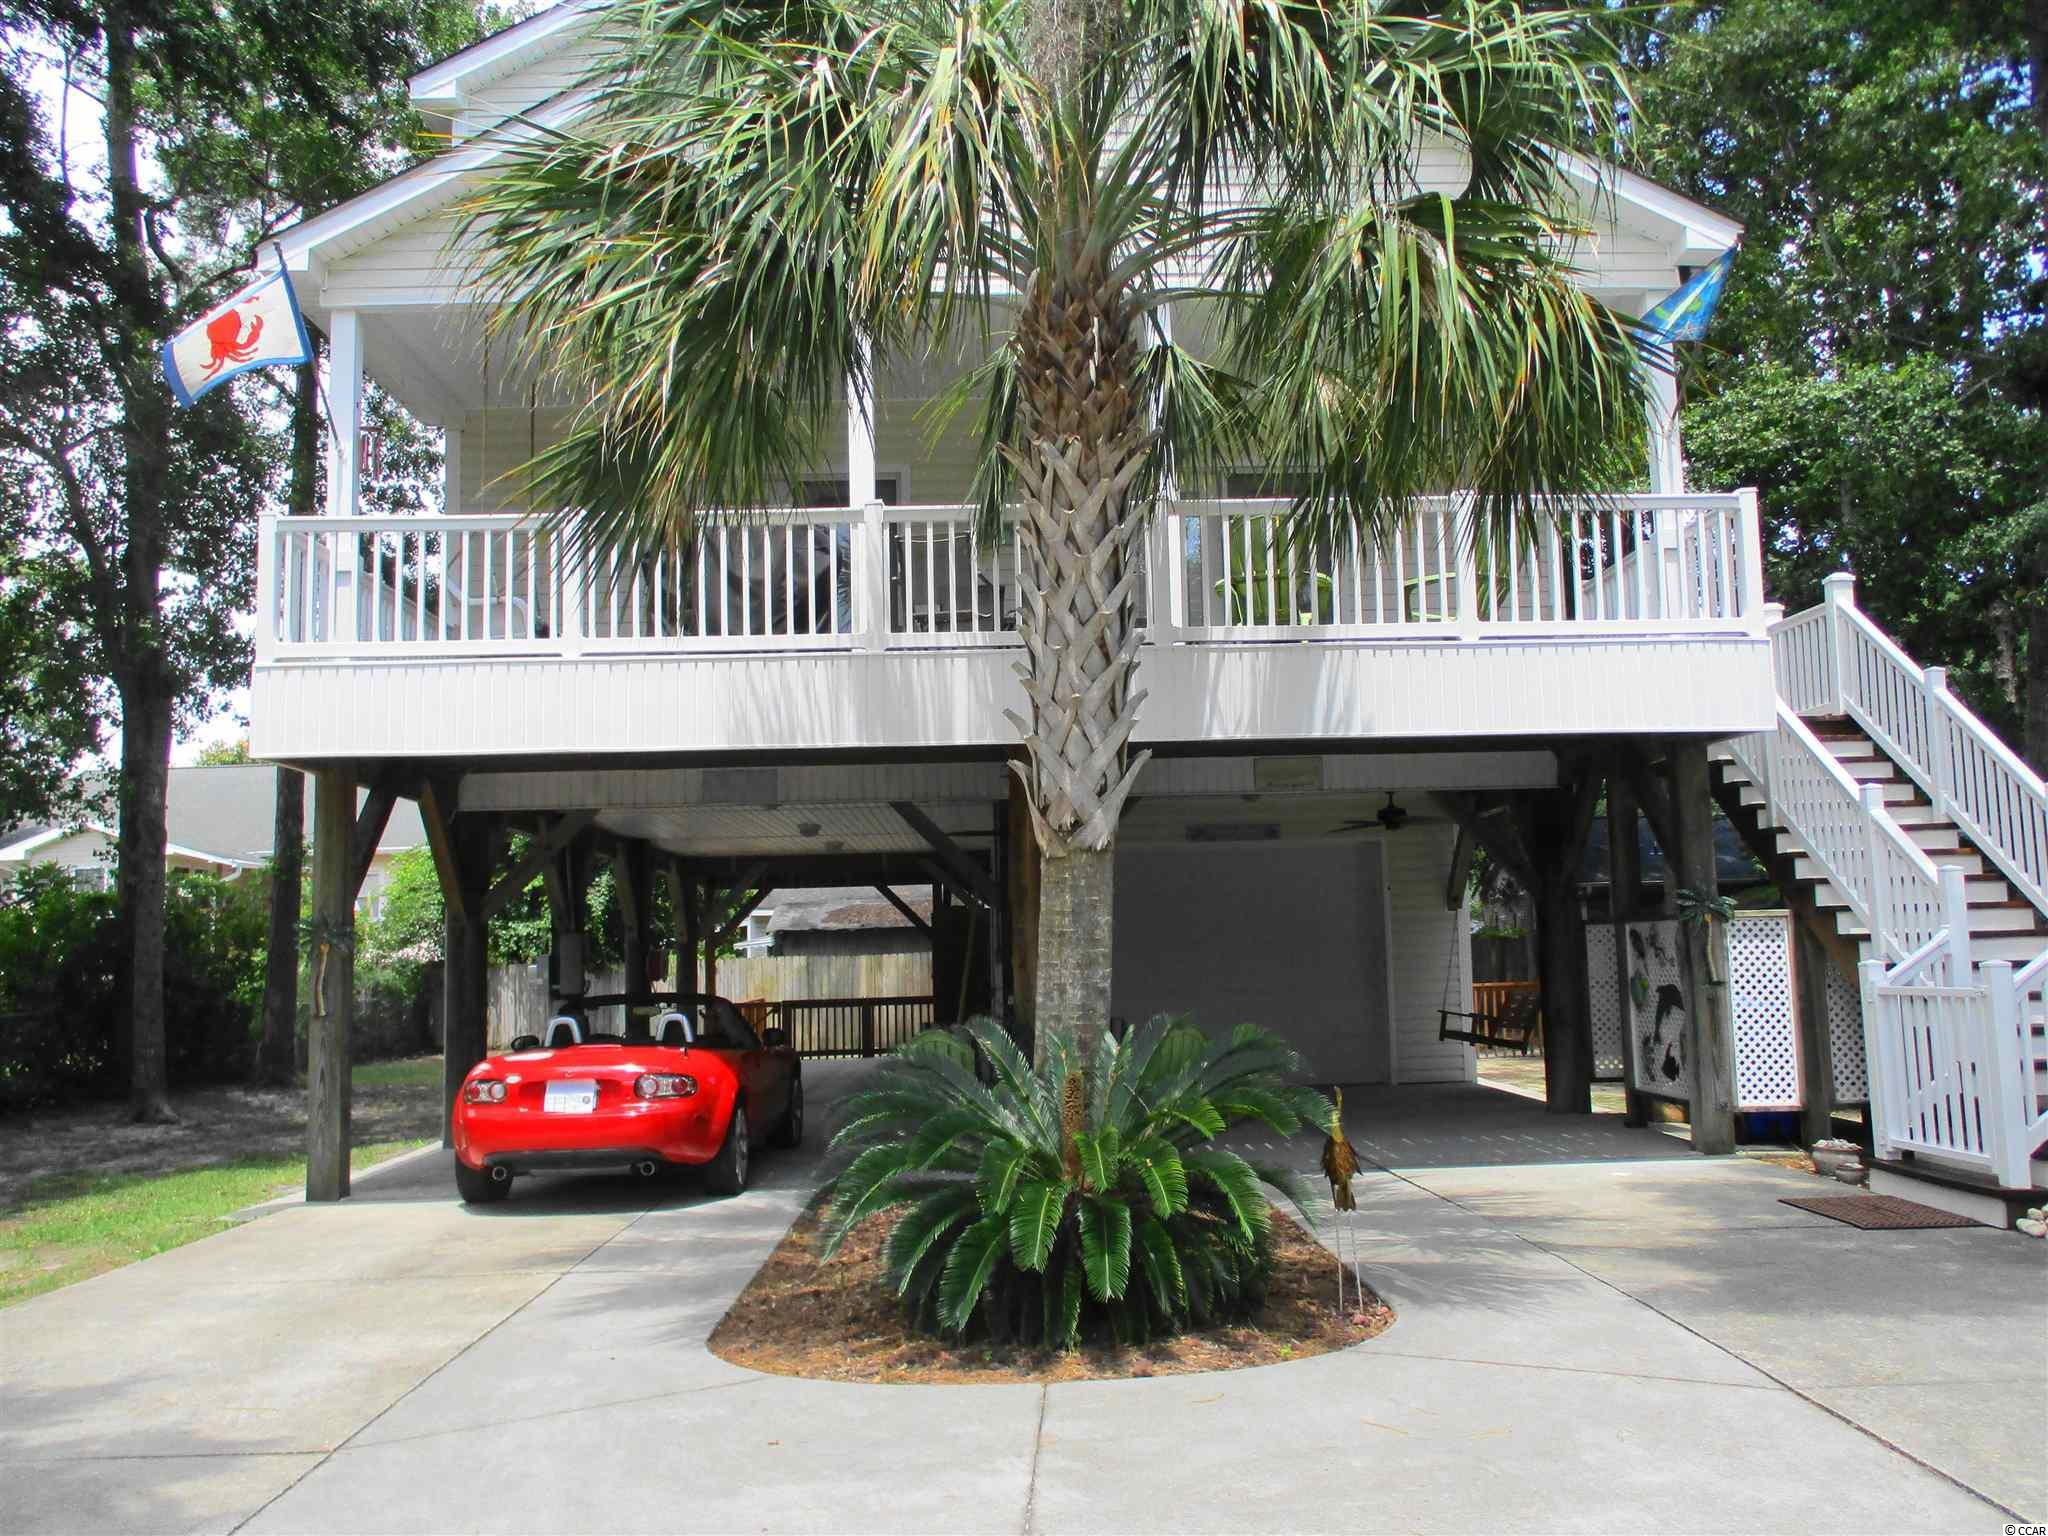 NO HOA. Walk thru this beautiful bright maintained completely furnished 4 bedroom 2 bath raised beach home with garage, patio furniture & swing. The covered deck is perfect for entertaining with table, chairs, swing & grill.  The high kitchen, dining and family ceiling provide plenty of light. Walk out the master bedroom onto a large deck, down the stairs to the fenced yard & outdoor beach shower. This home has many closets, plenty of parking space for guests, includes washer & dryer, furnishings, decorations, linens, cookware.  HVAC 2016, Water heater/upstairs 2019, refrigerator 2017, washer & dryer 2016, microwave 2019, Natural Cedar stain on decks 7/21. All bedrooms have ceiling fans. Owners used as 2nd home. Note: car & golf cart do not convey. Buyers responsible for accurate measurements.